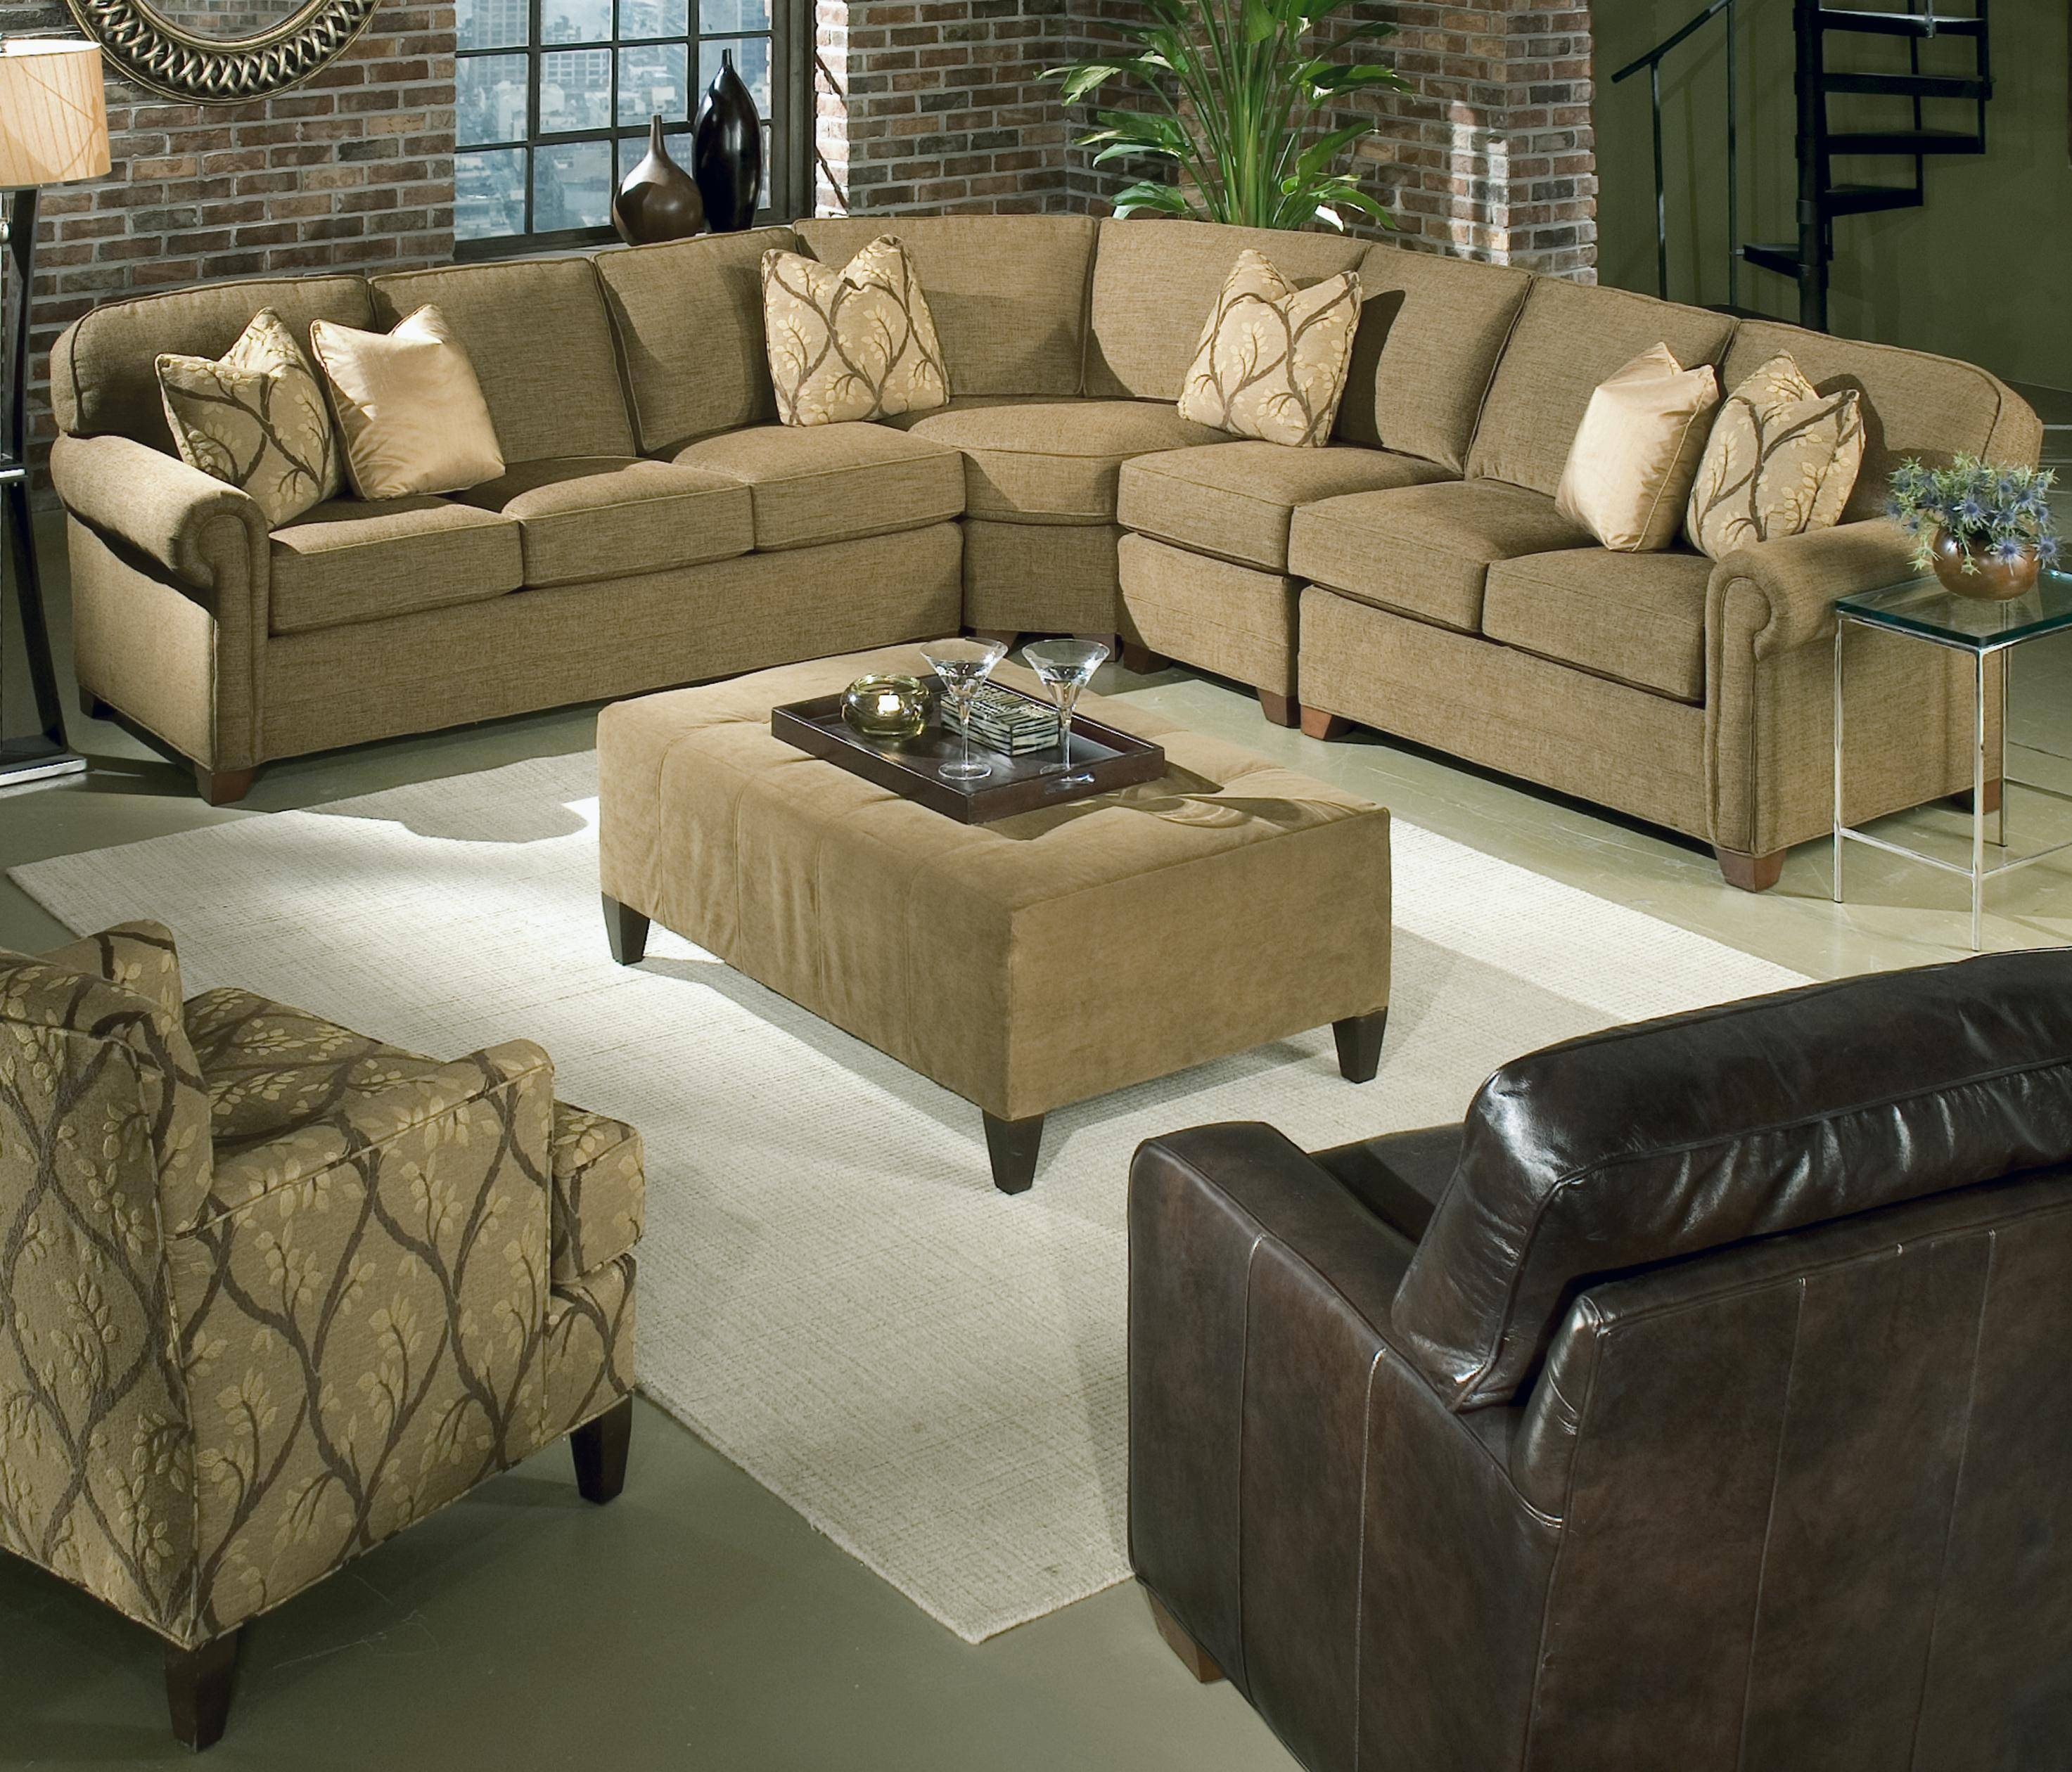 Beautiful Customizable Sectional Sofa 34 For Your Individual with regard to Individual Sectional Sofas Pieces (Image 2 of 15)